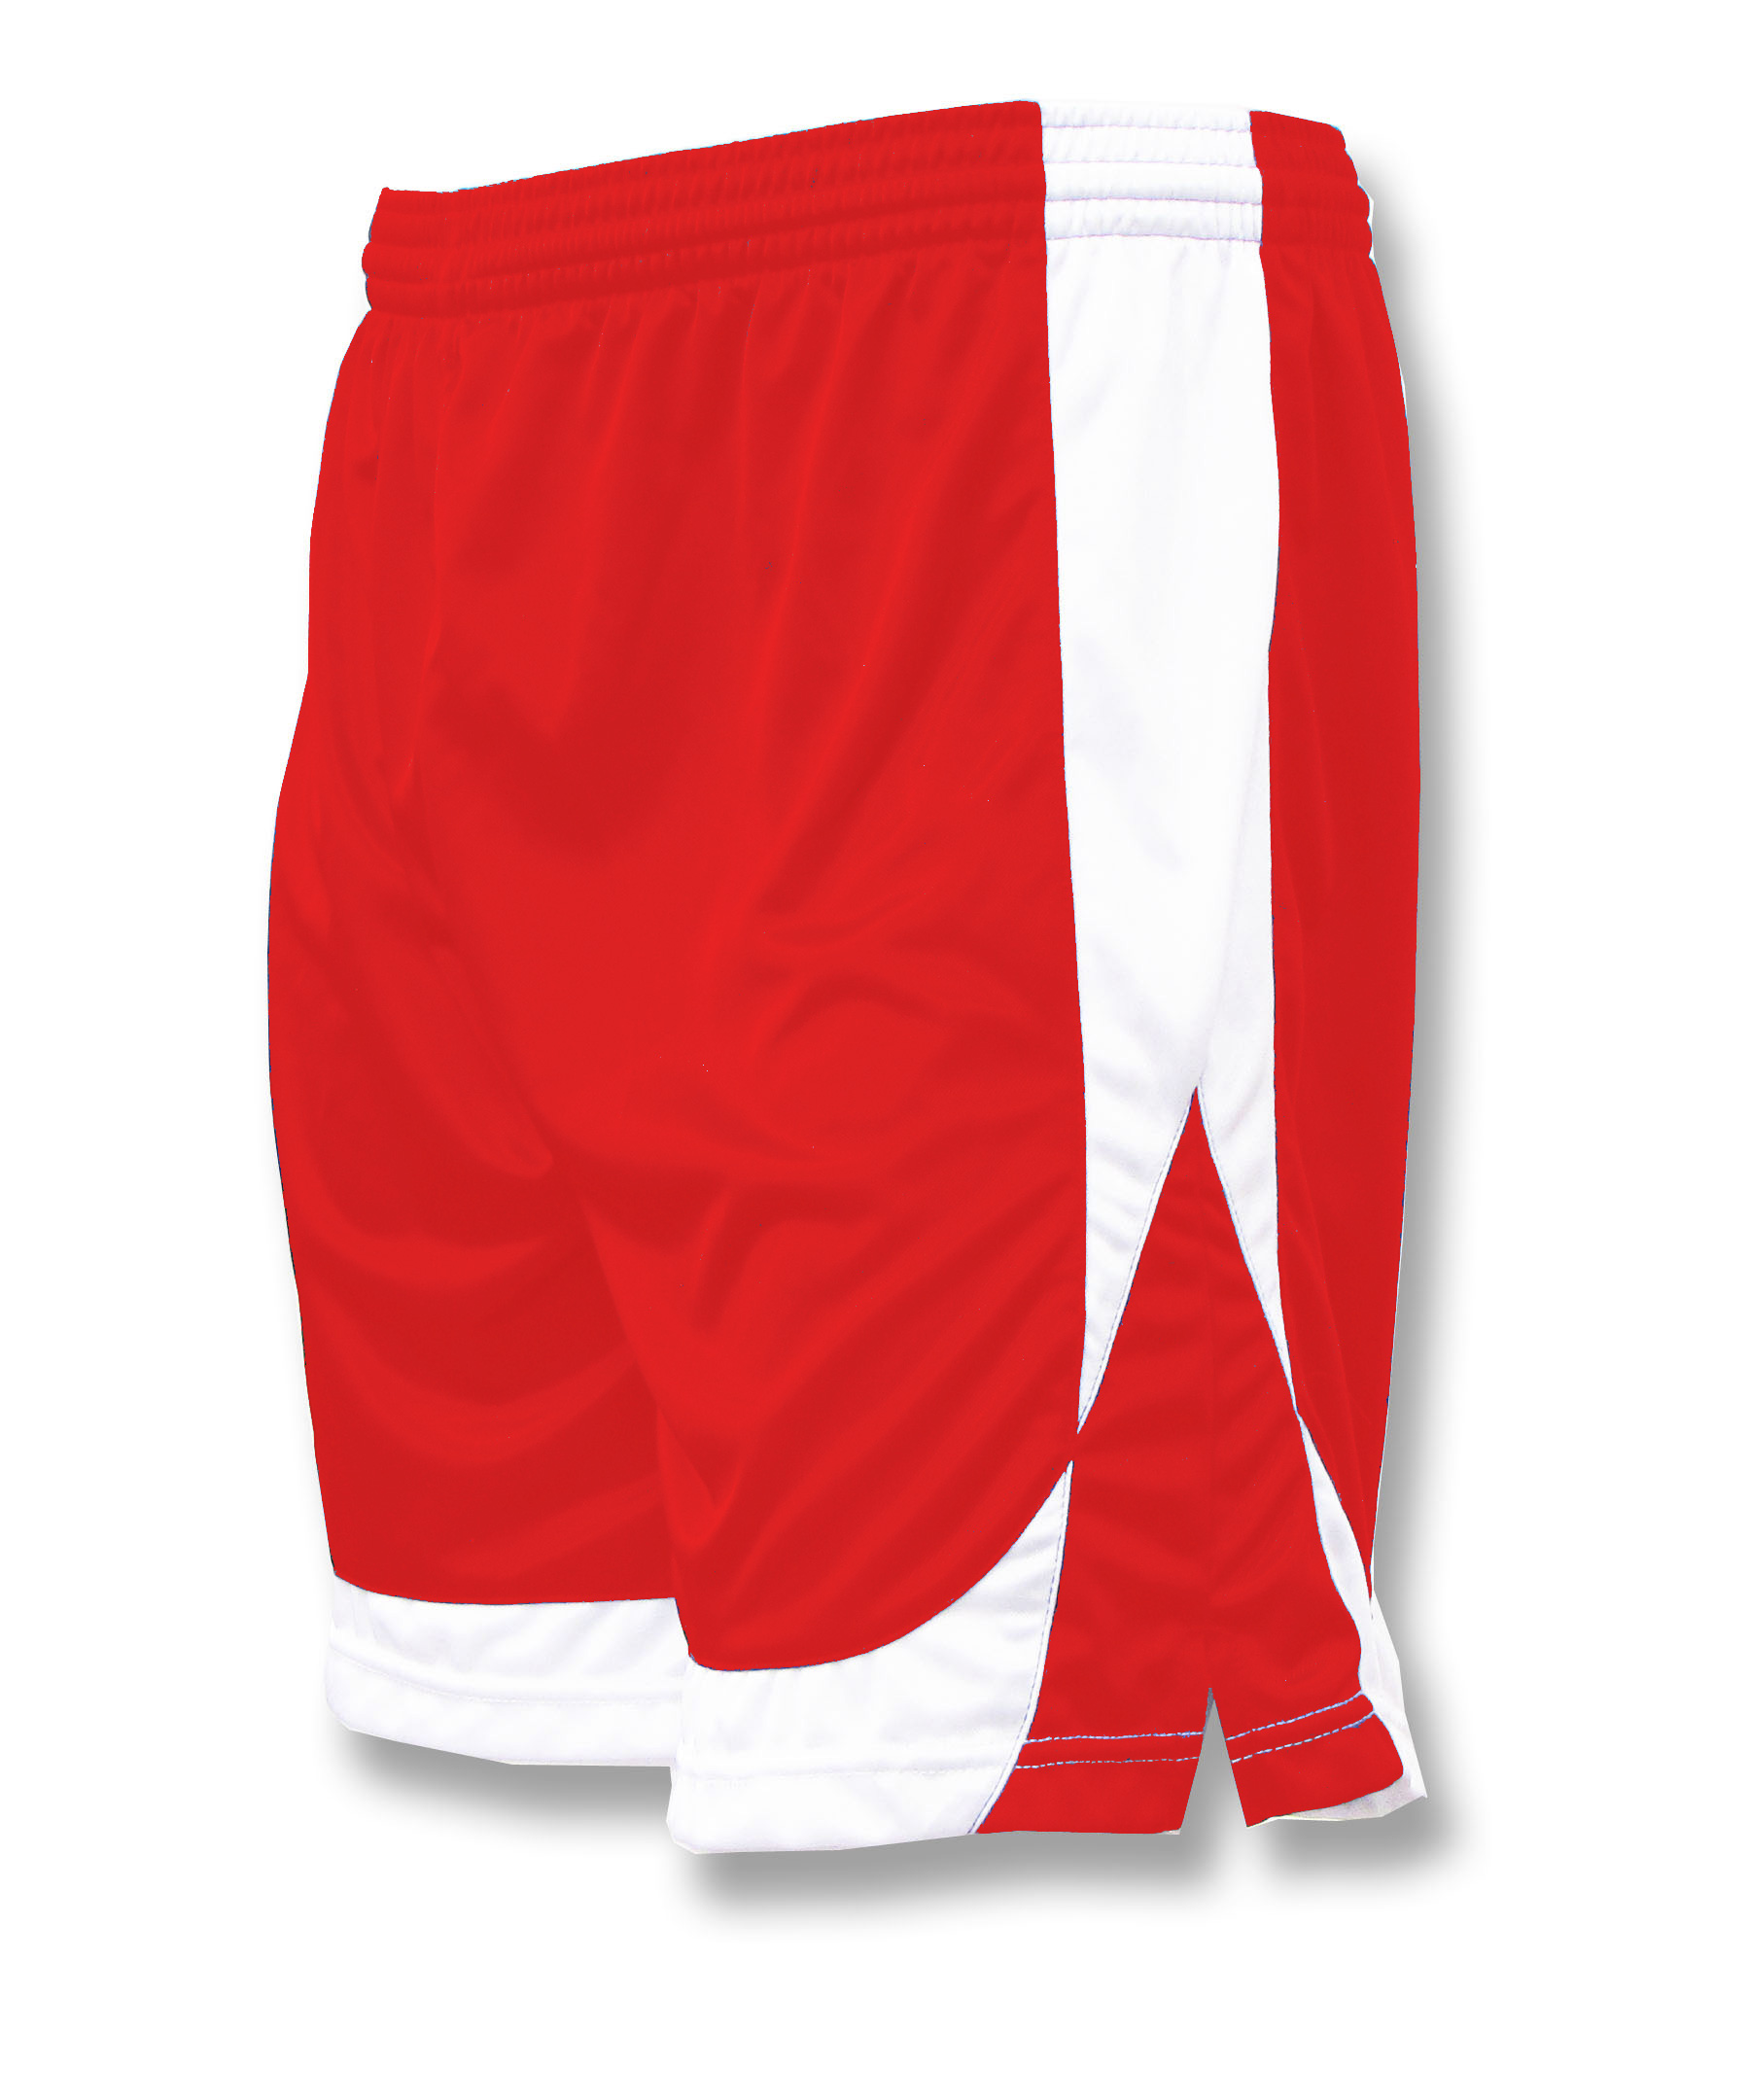 Omega soccer shorts in red/white by Code Four Athletics